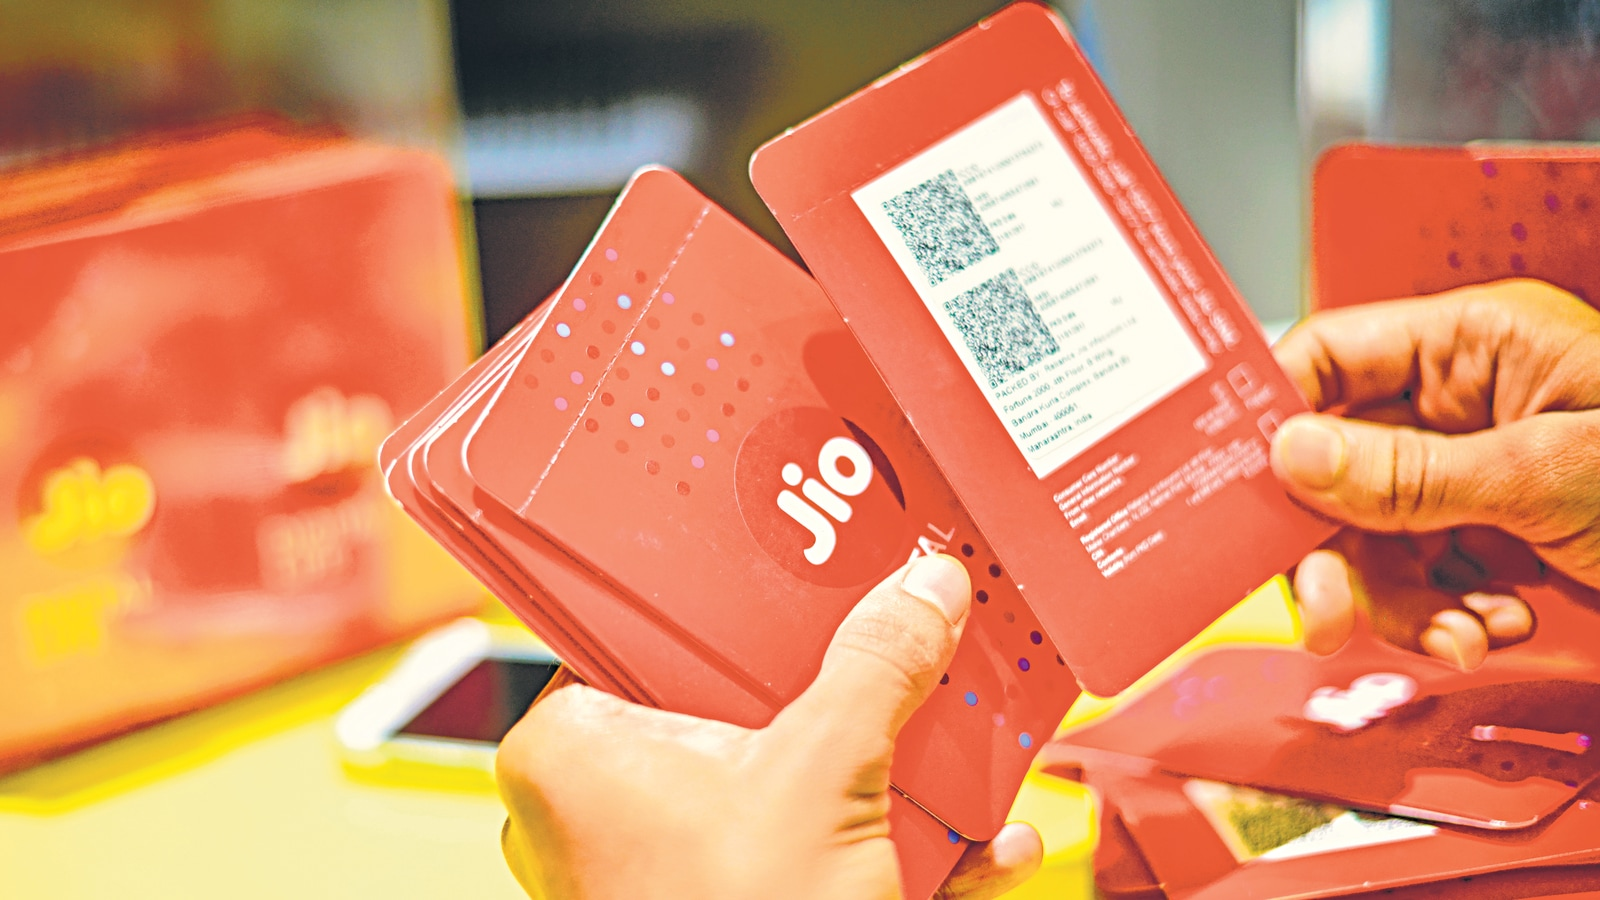 DoT receives ₹ 2,307 cr from Jio, Airtel for a spectrum